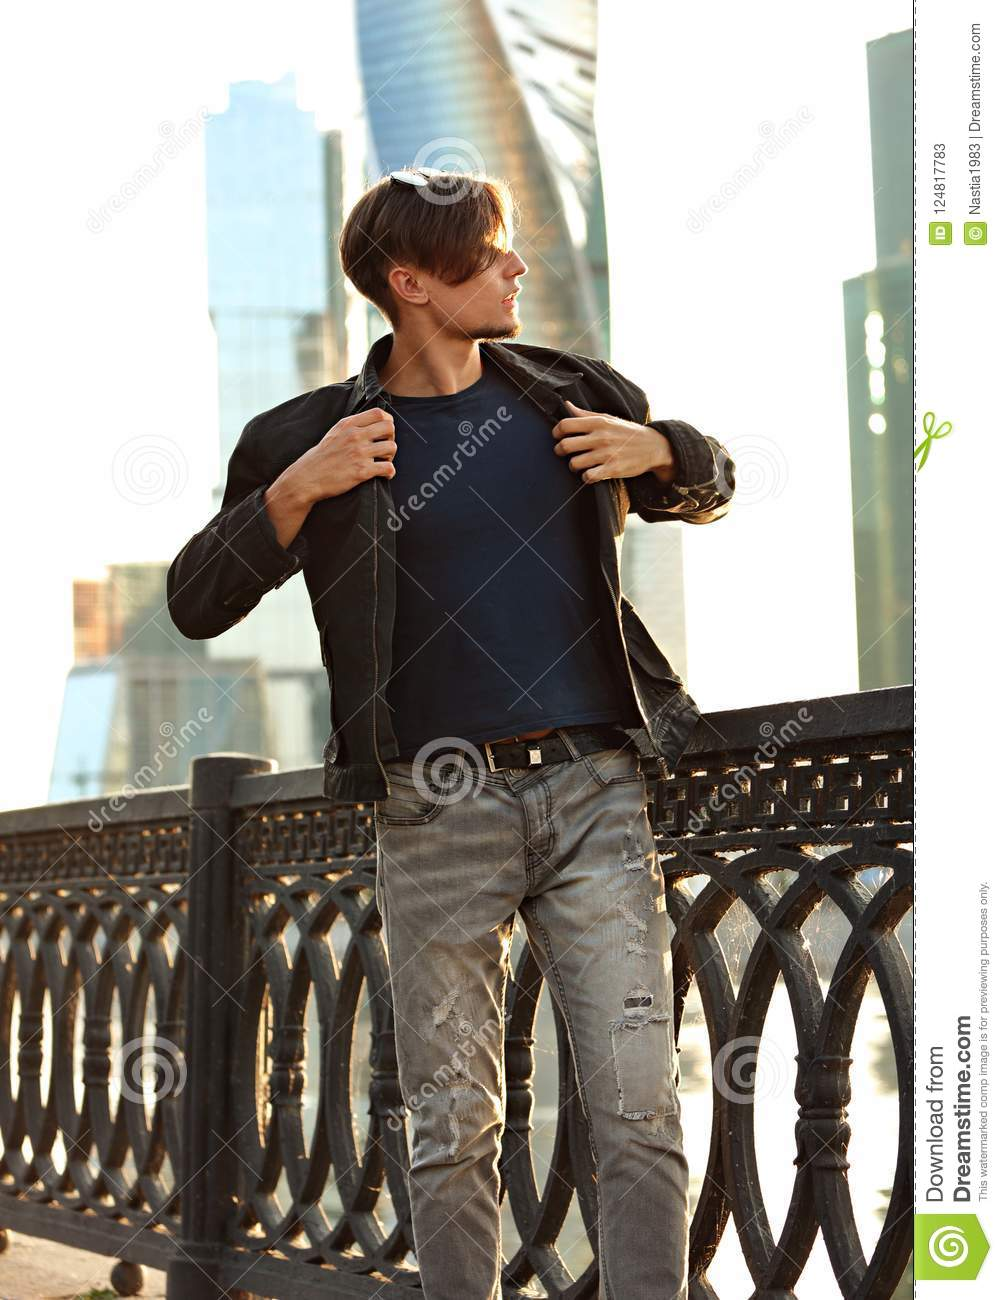 Model De Dressing Thinking Handsome Young Man Walking In Fashion Jeans And Dressing